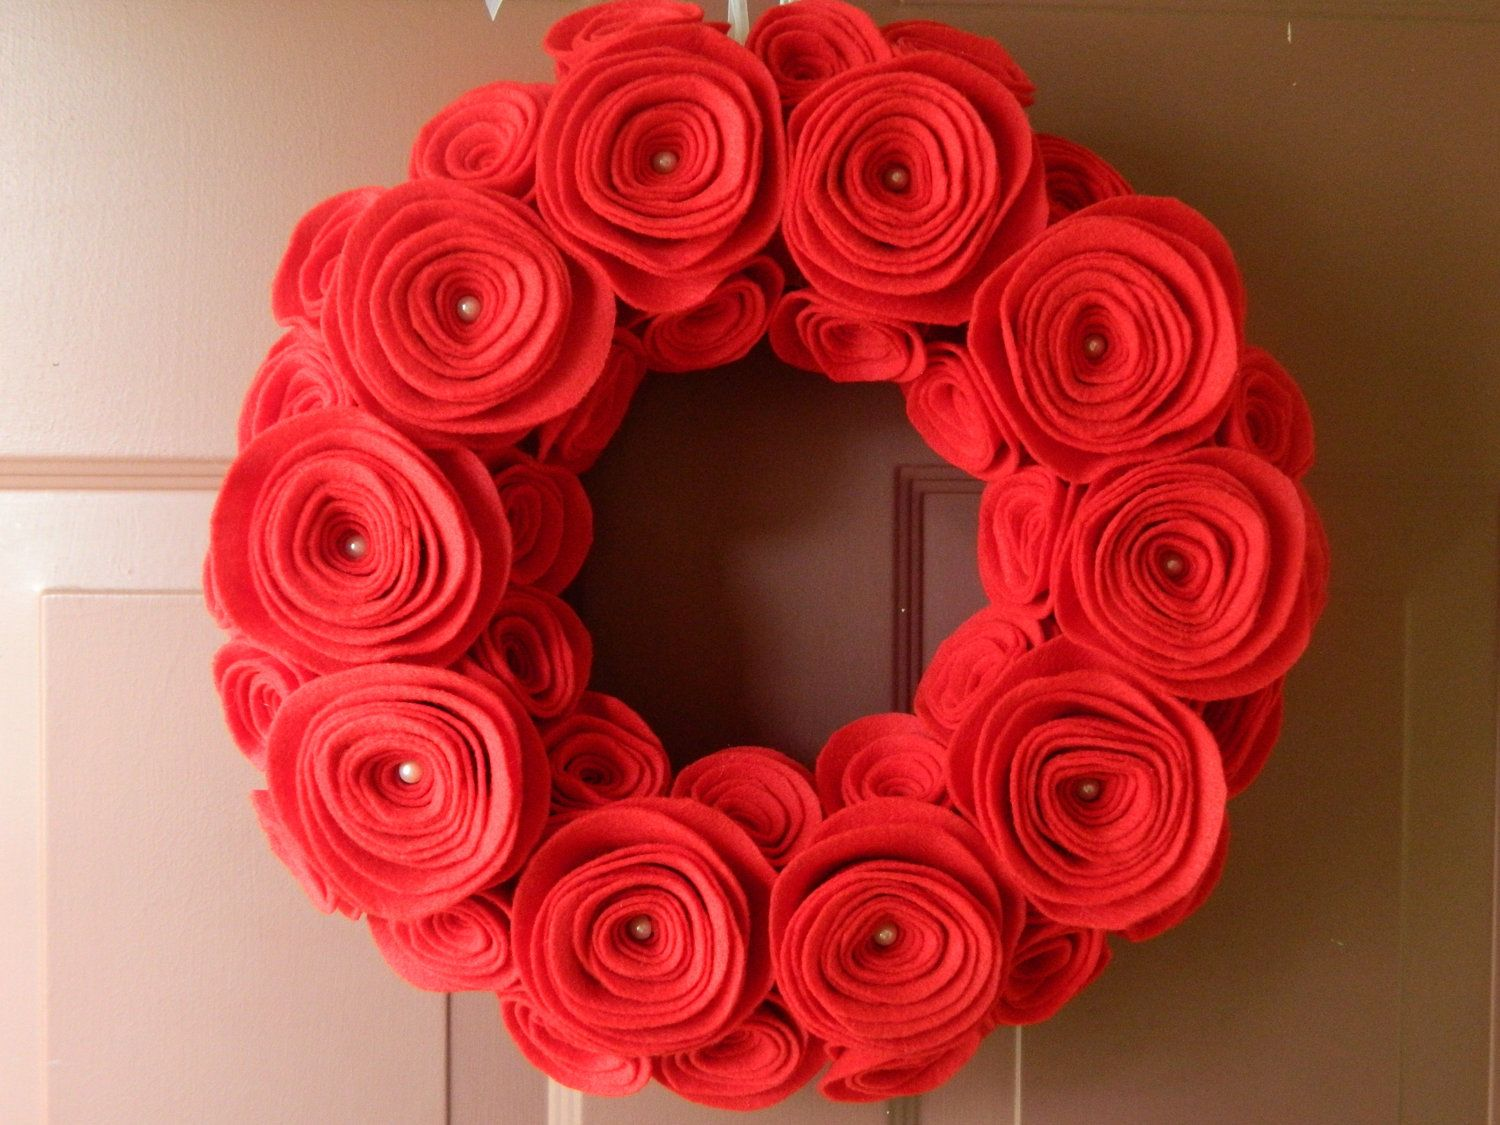 Red Felt Flower Wreath - 12 inch with pearls - Christmas Wreath ...